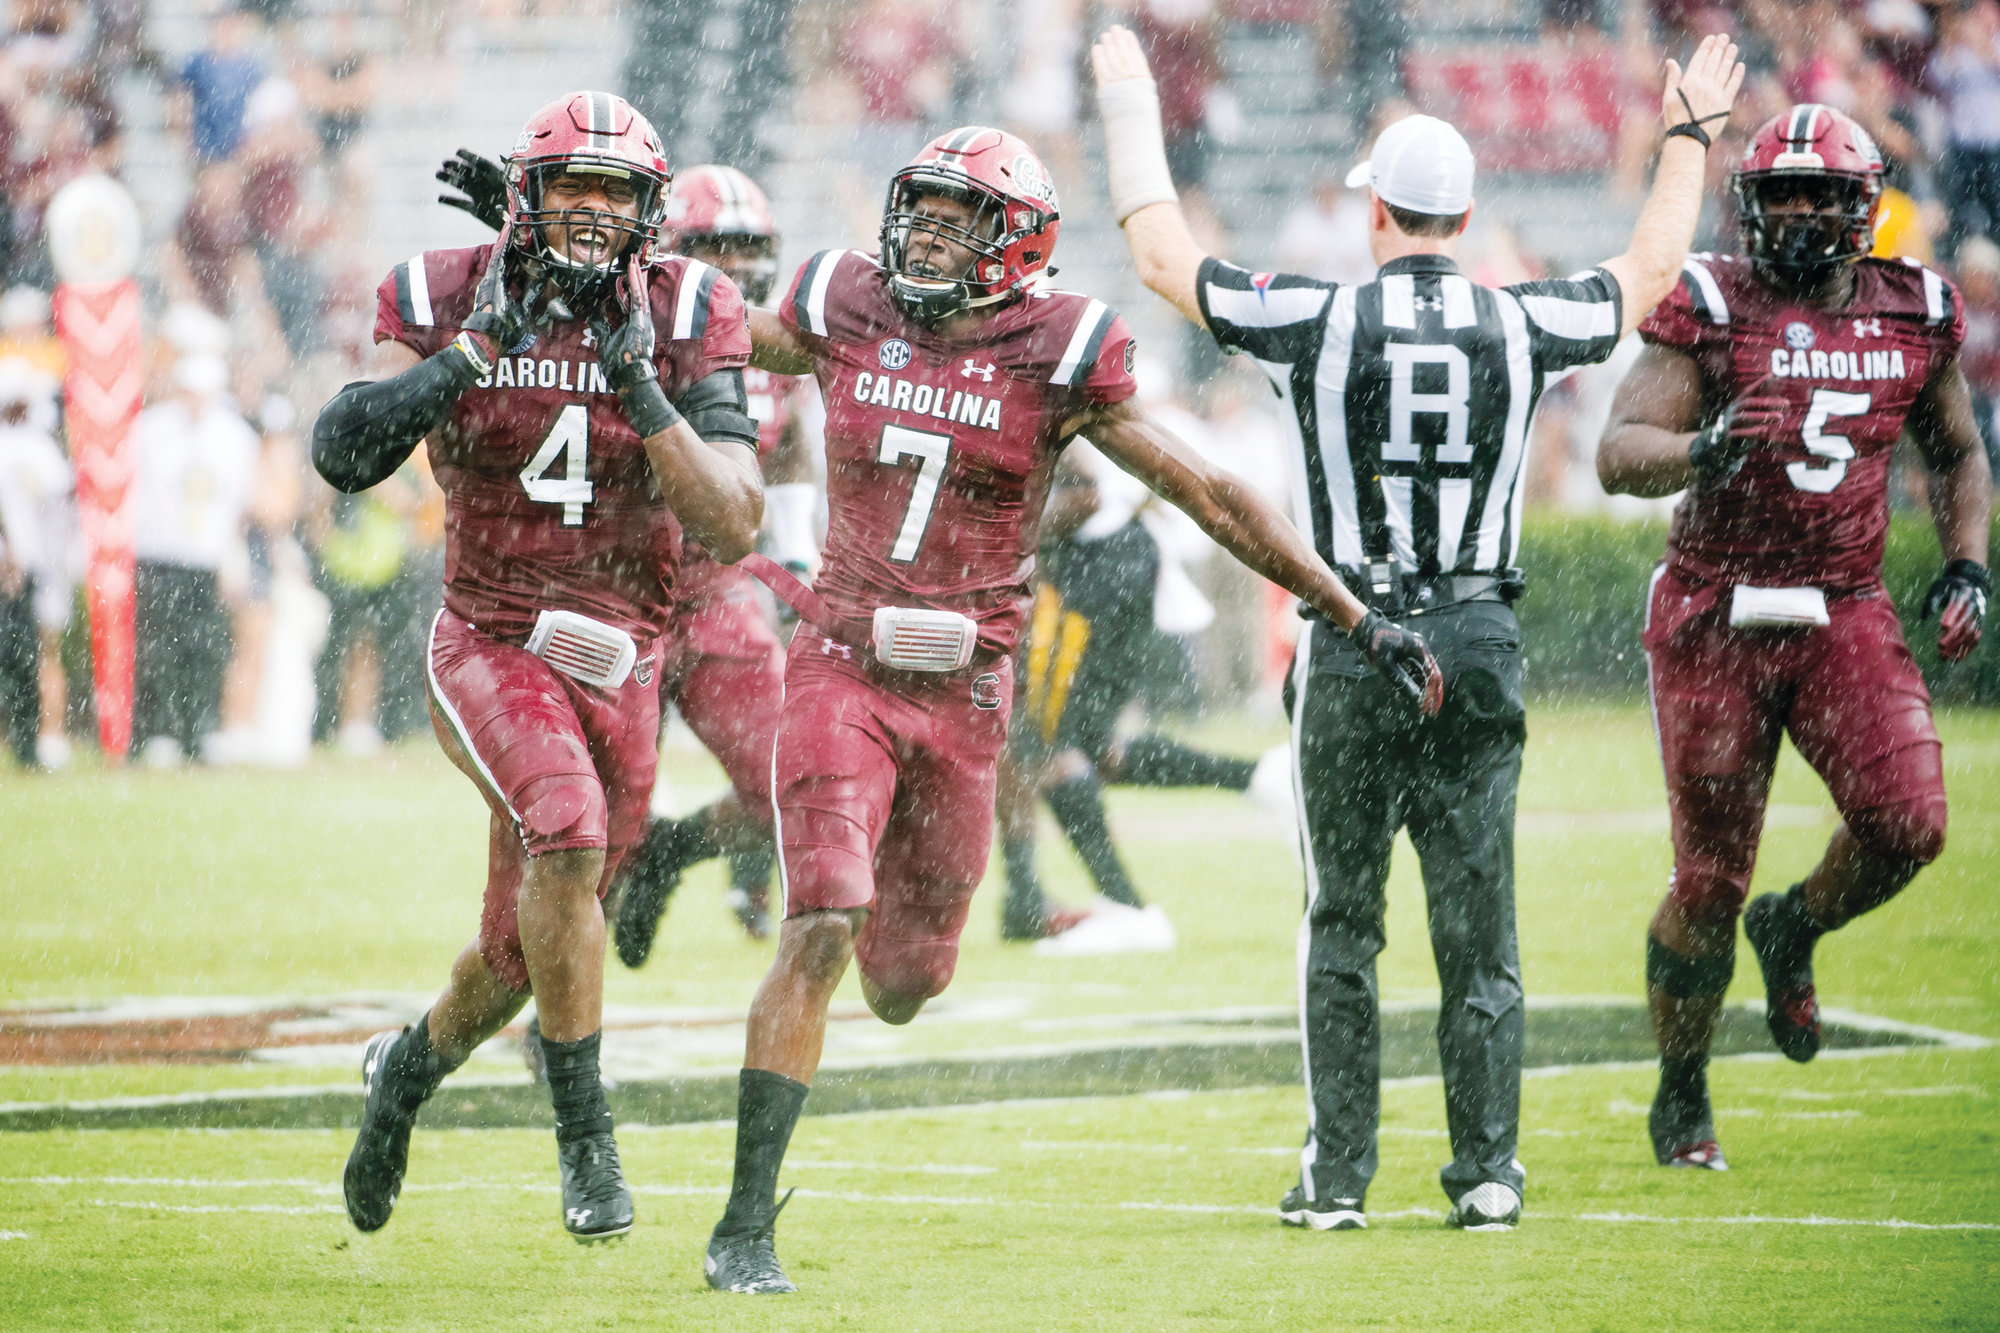 South Carolina linebacker Bryson Allen-Williams (4) and cornerback Jaycee Horn (7) celebrate an interception against Missouri during the Gamecocks; 37-35 victory on Saturday at Williams-Brice Stadium in Columbia.